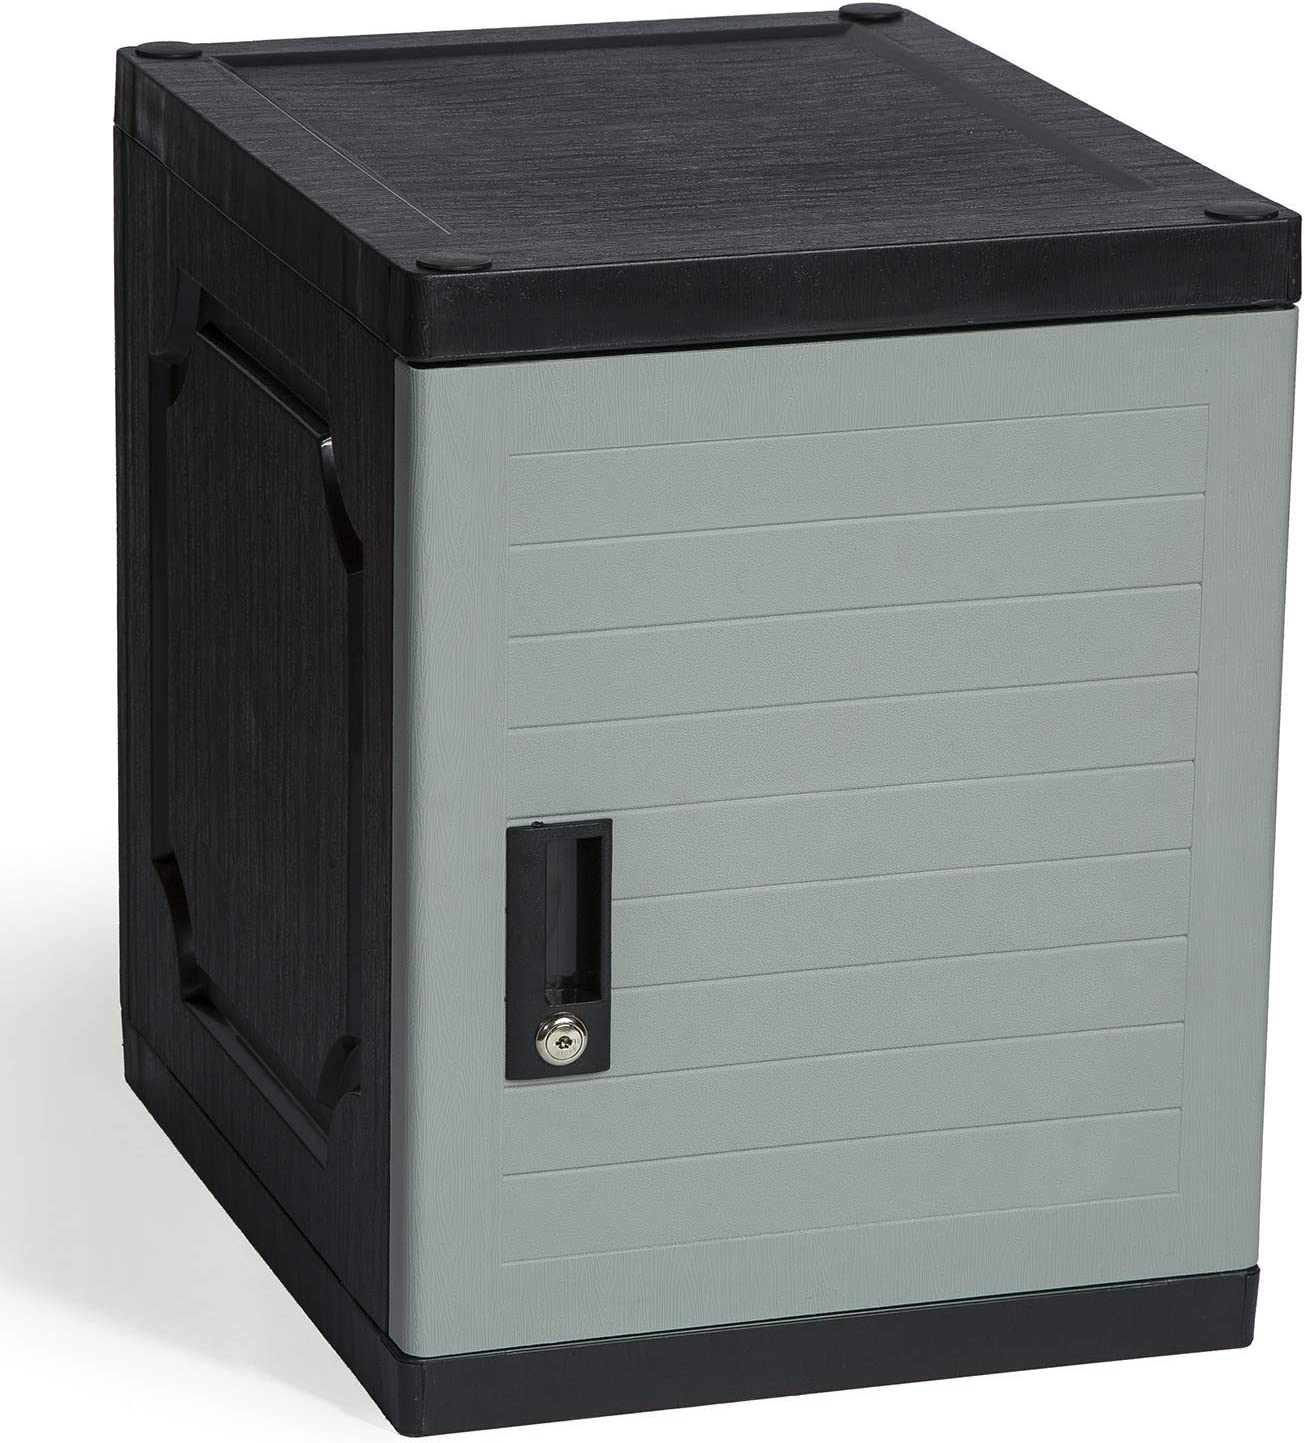 "Amazon.com: Jink Locker - Lockable Storage Cabinet With Keys, 19"" - Great Locking Storage Box Solution For Home, Garage, Office Or Outdoor (Gray): Kitchen & Dining"